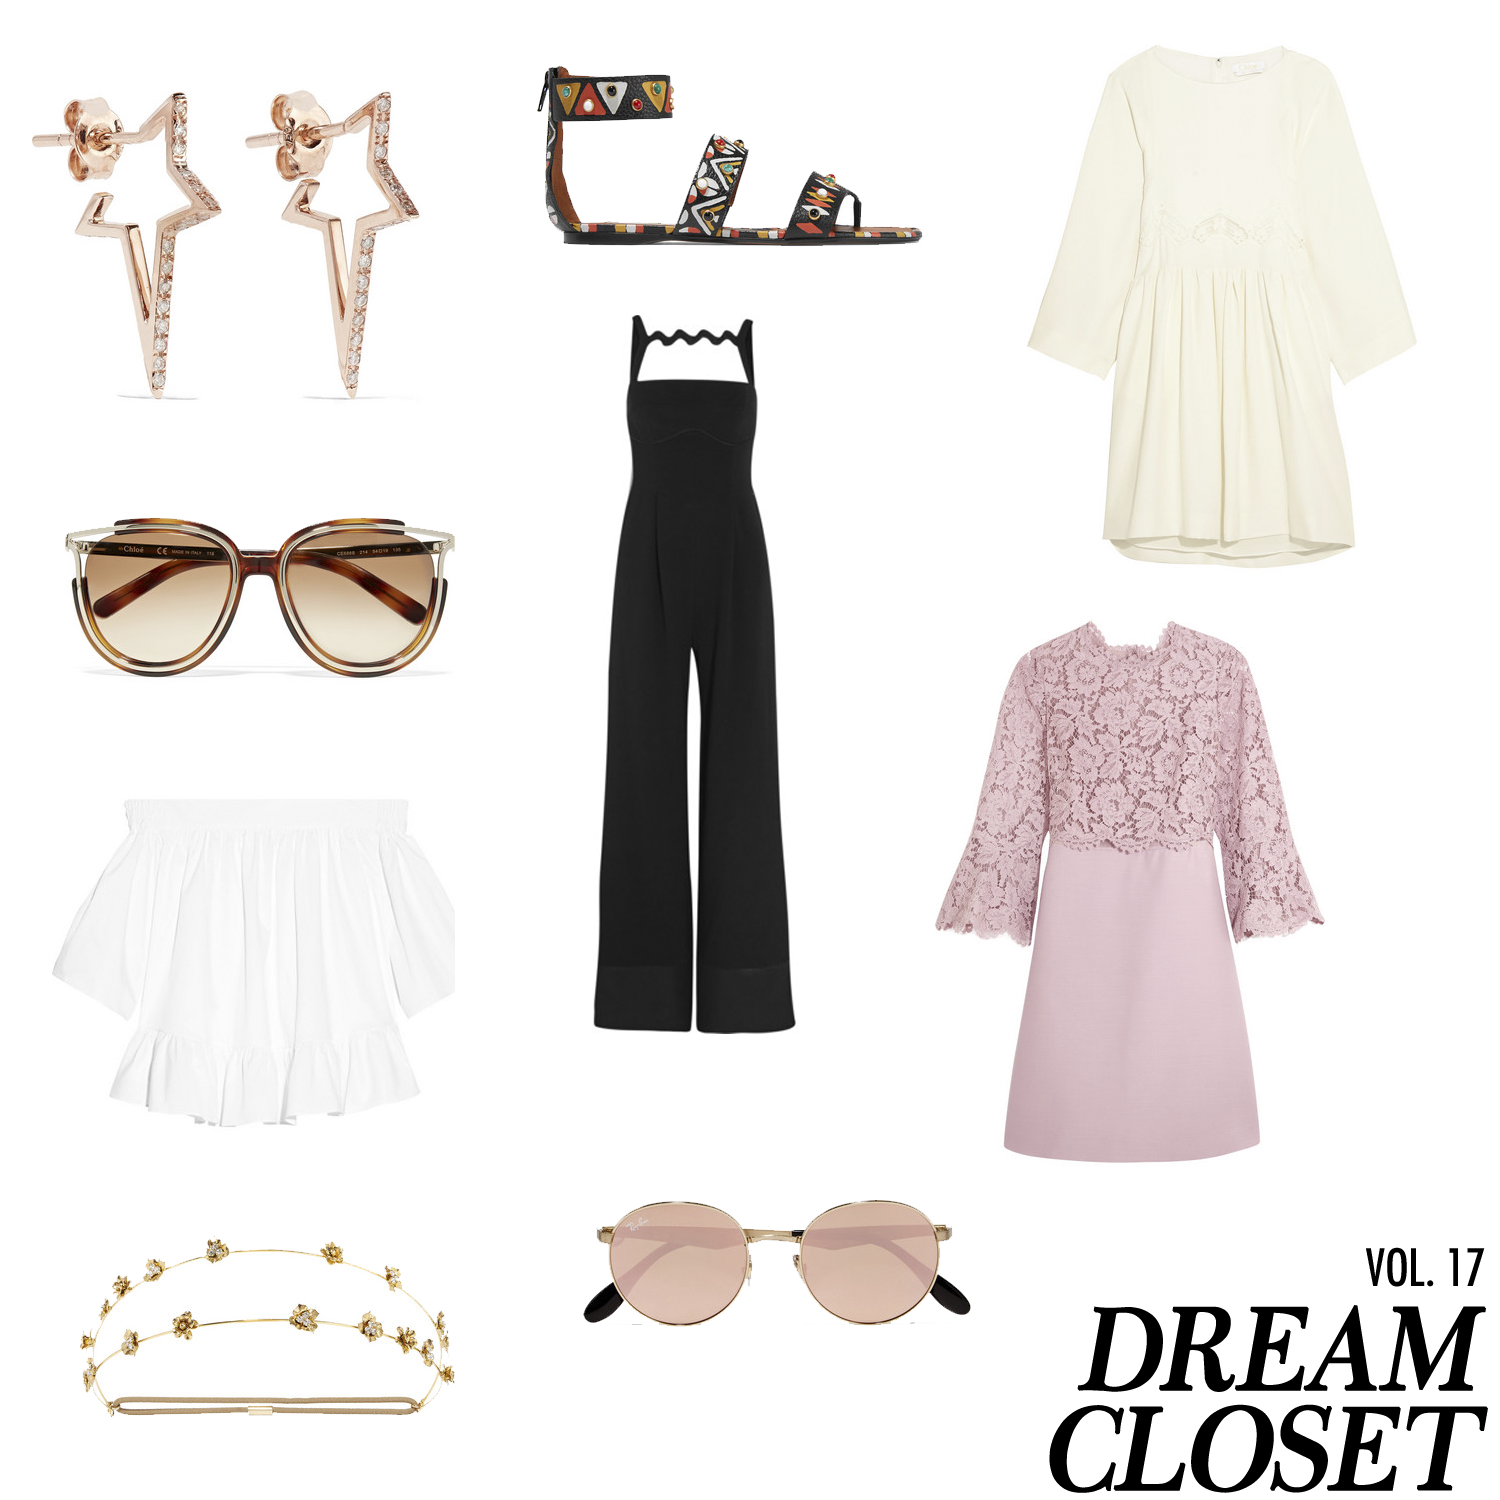 Dream Closet, Vol 17